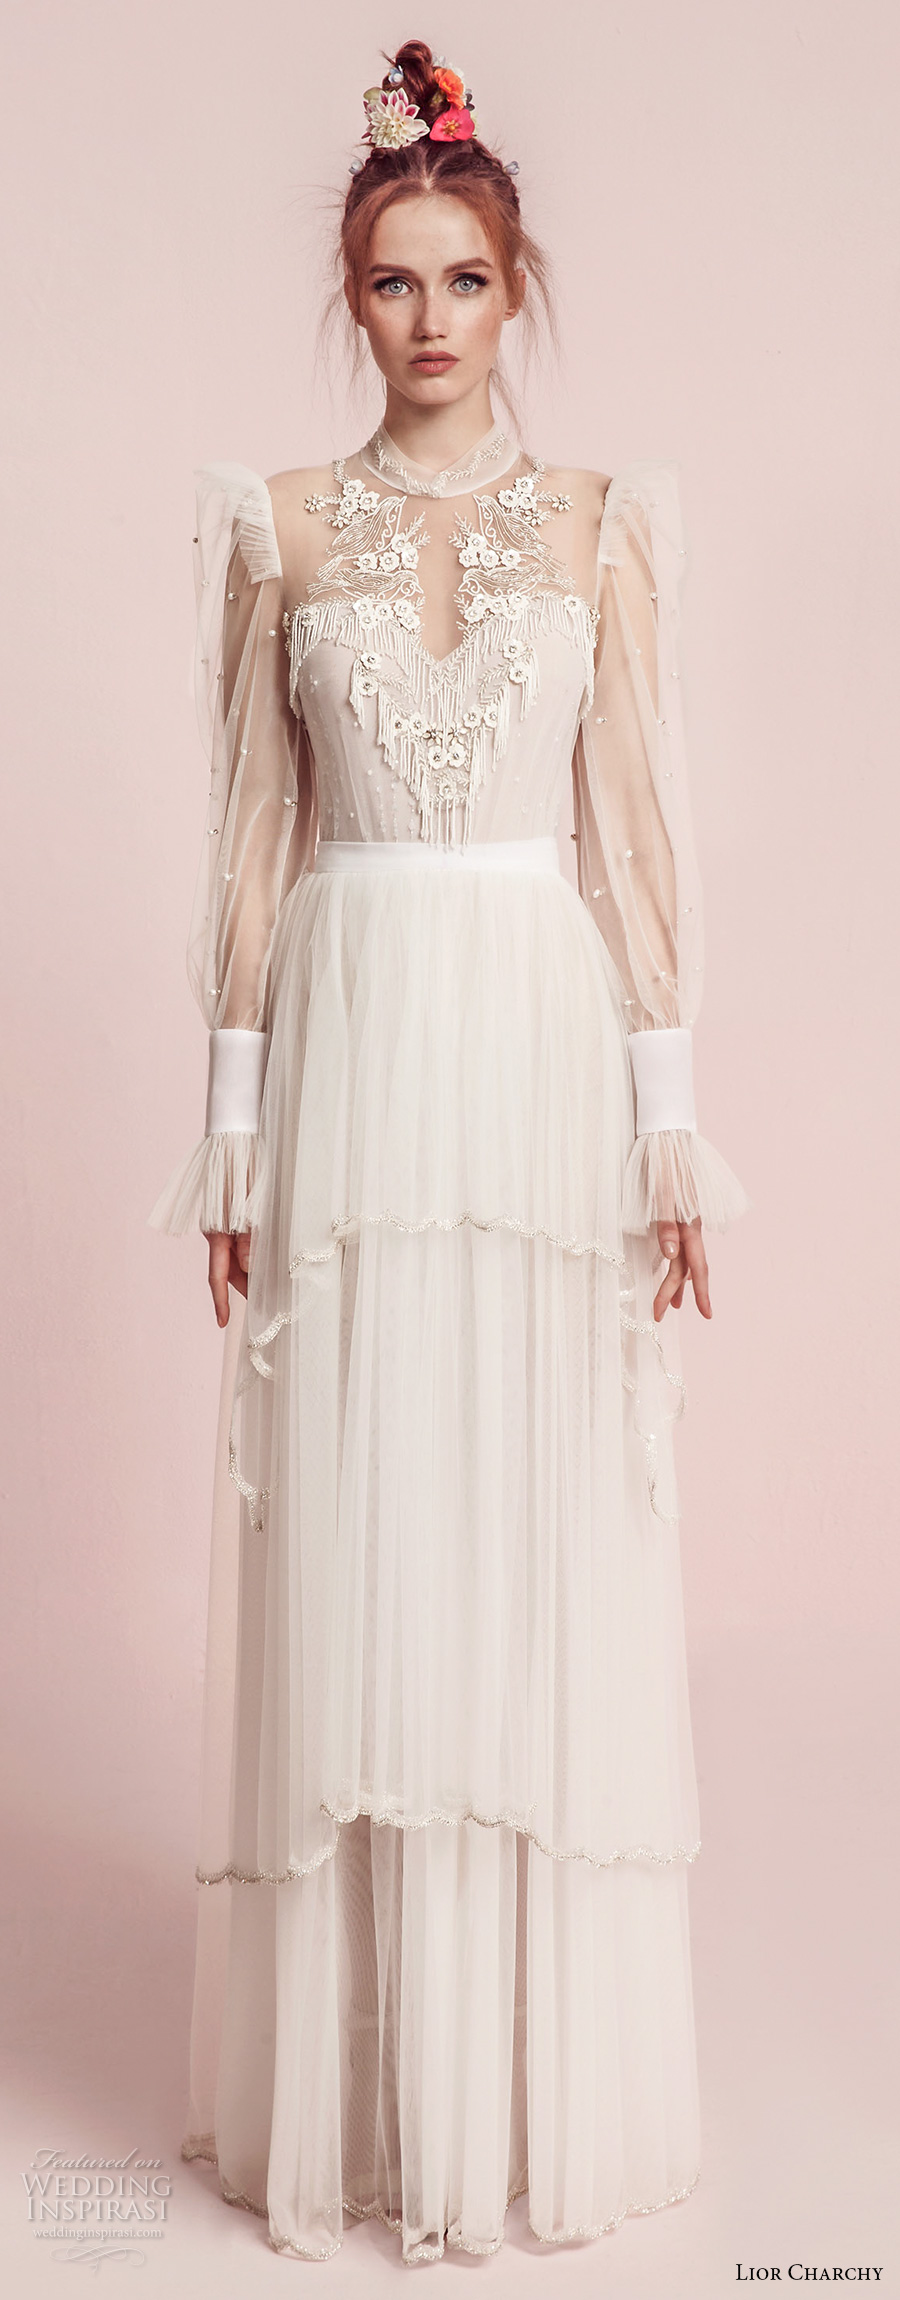 lior charchy spring 2017 bridal long sleeves illusion high neck sweetheart neck heavily embellished bodice layered skirt retro bohemian a  line wedding dress (2) mv